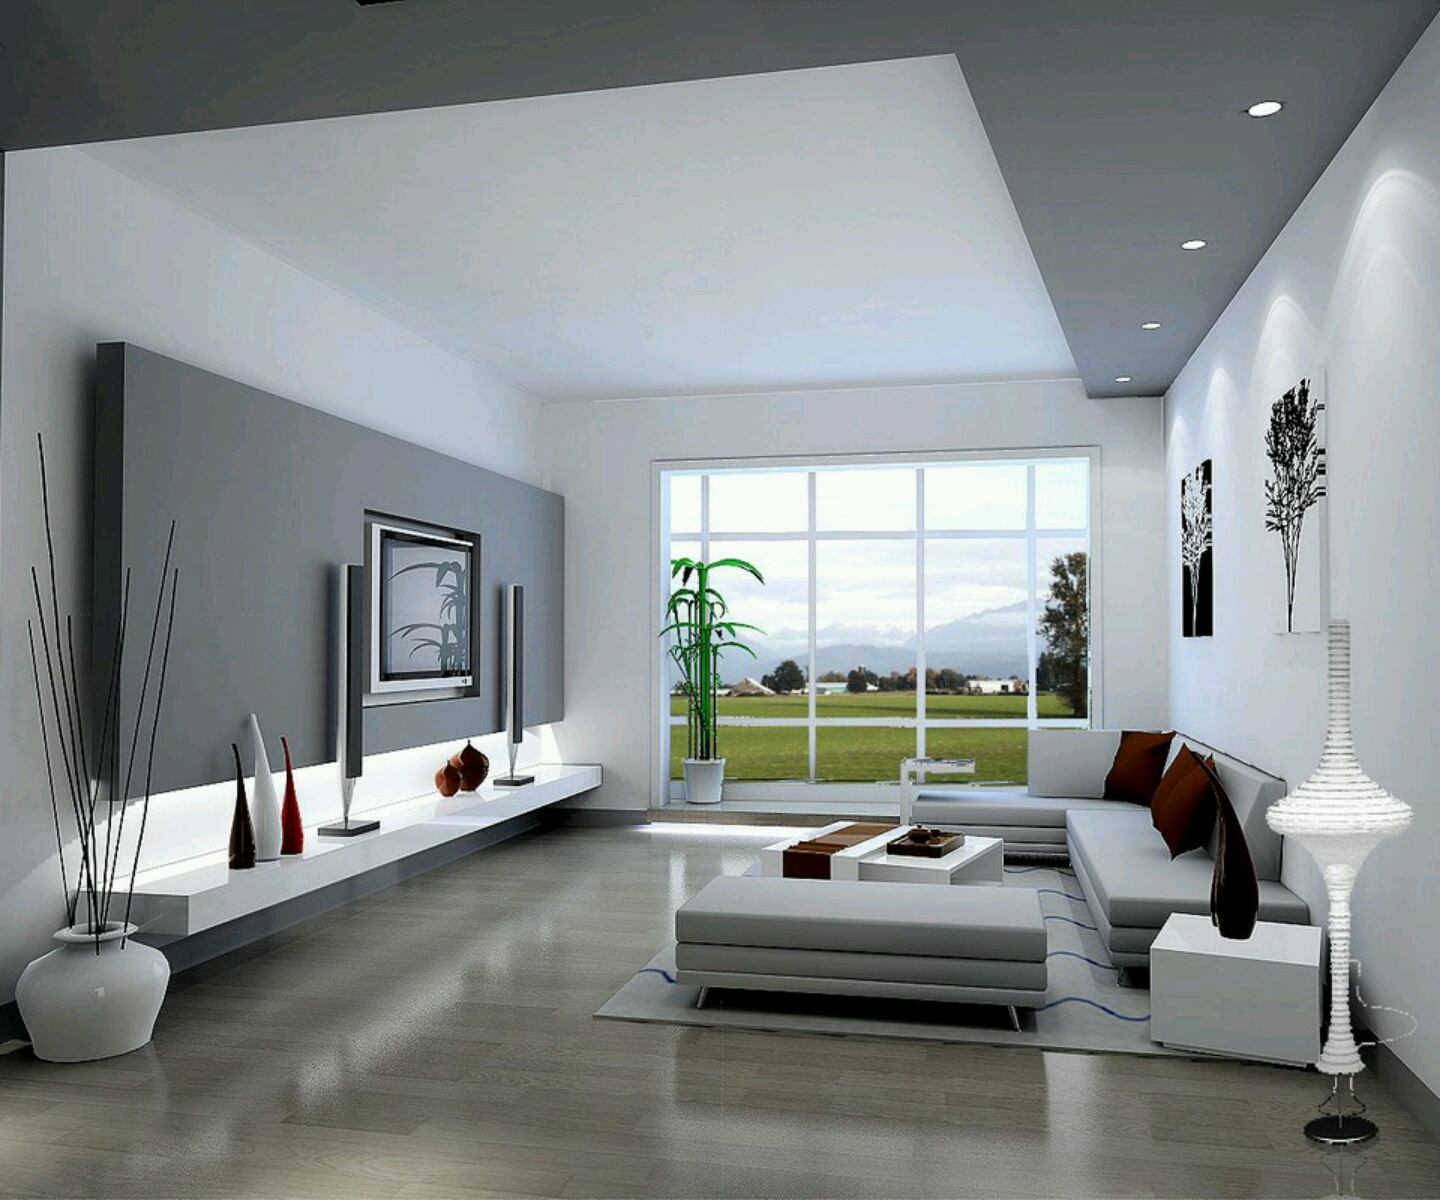 Modern living rooms interior designs ideas new home designs for Modern interior design ideas living room